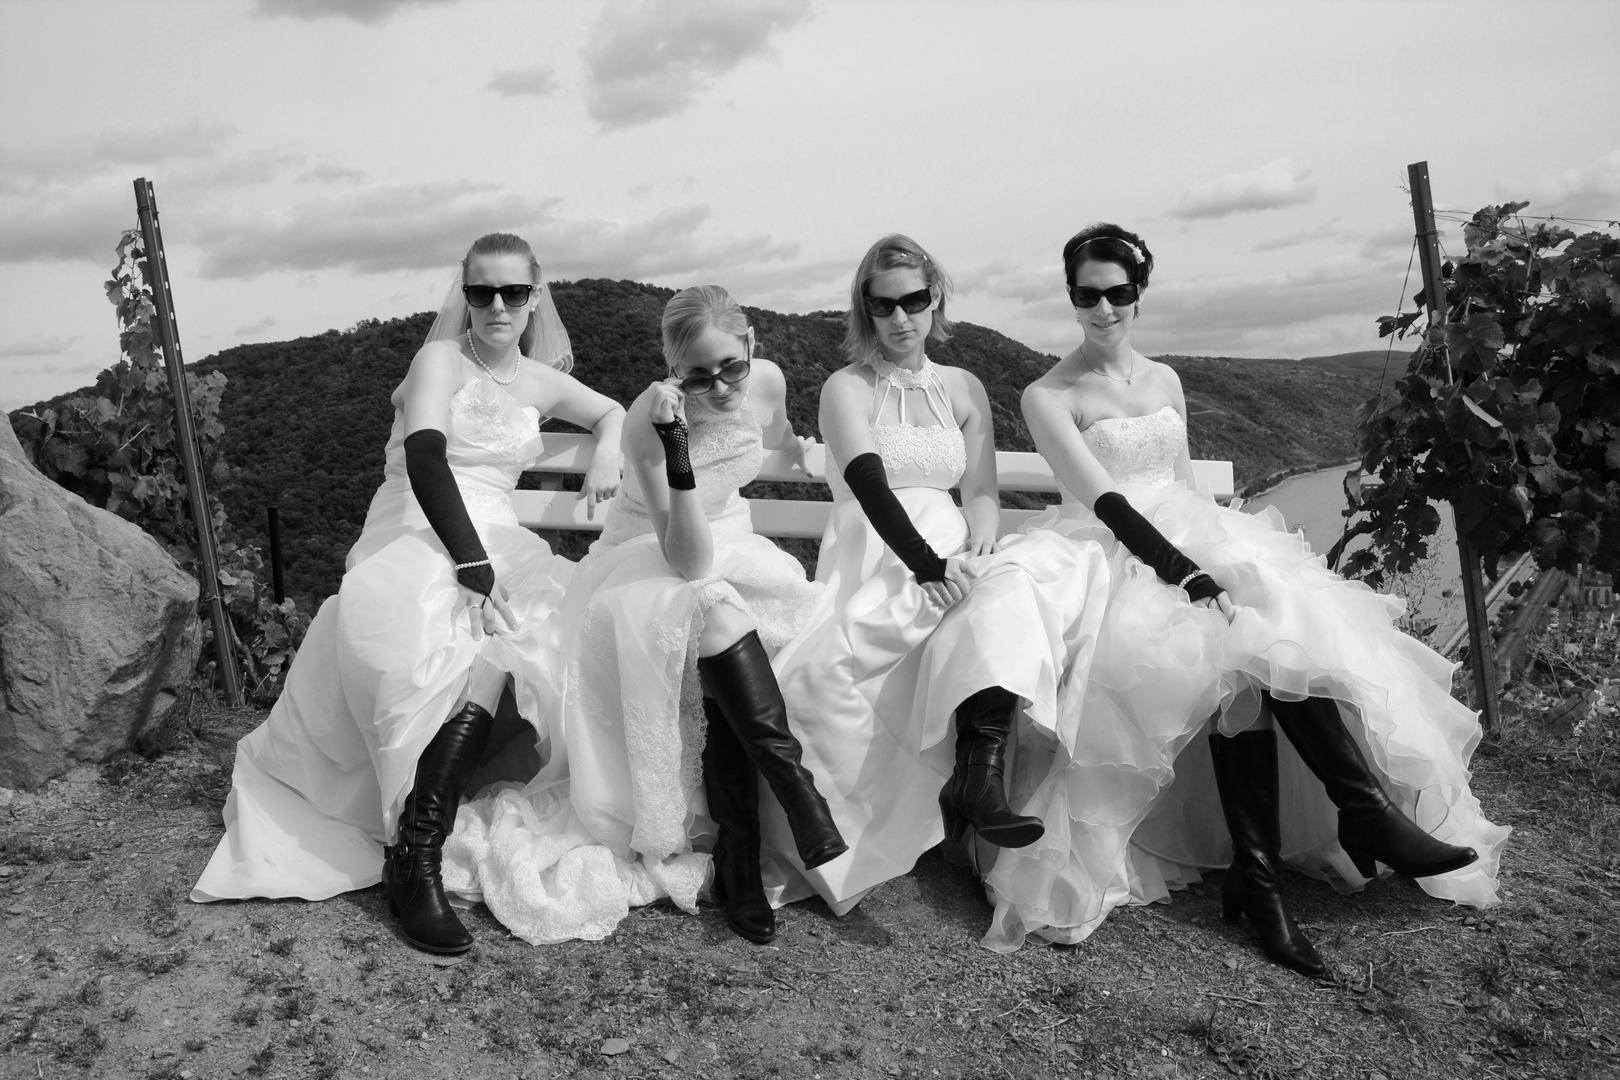 tough chicks